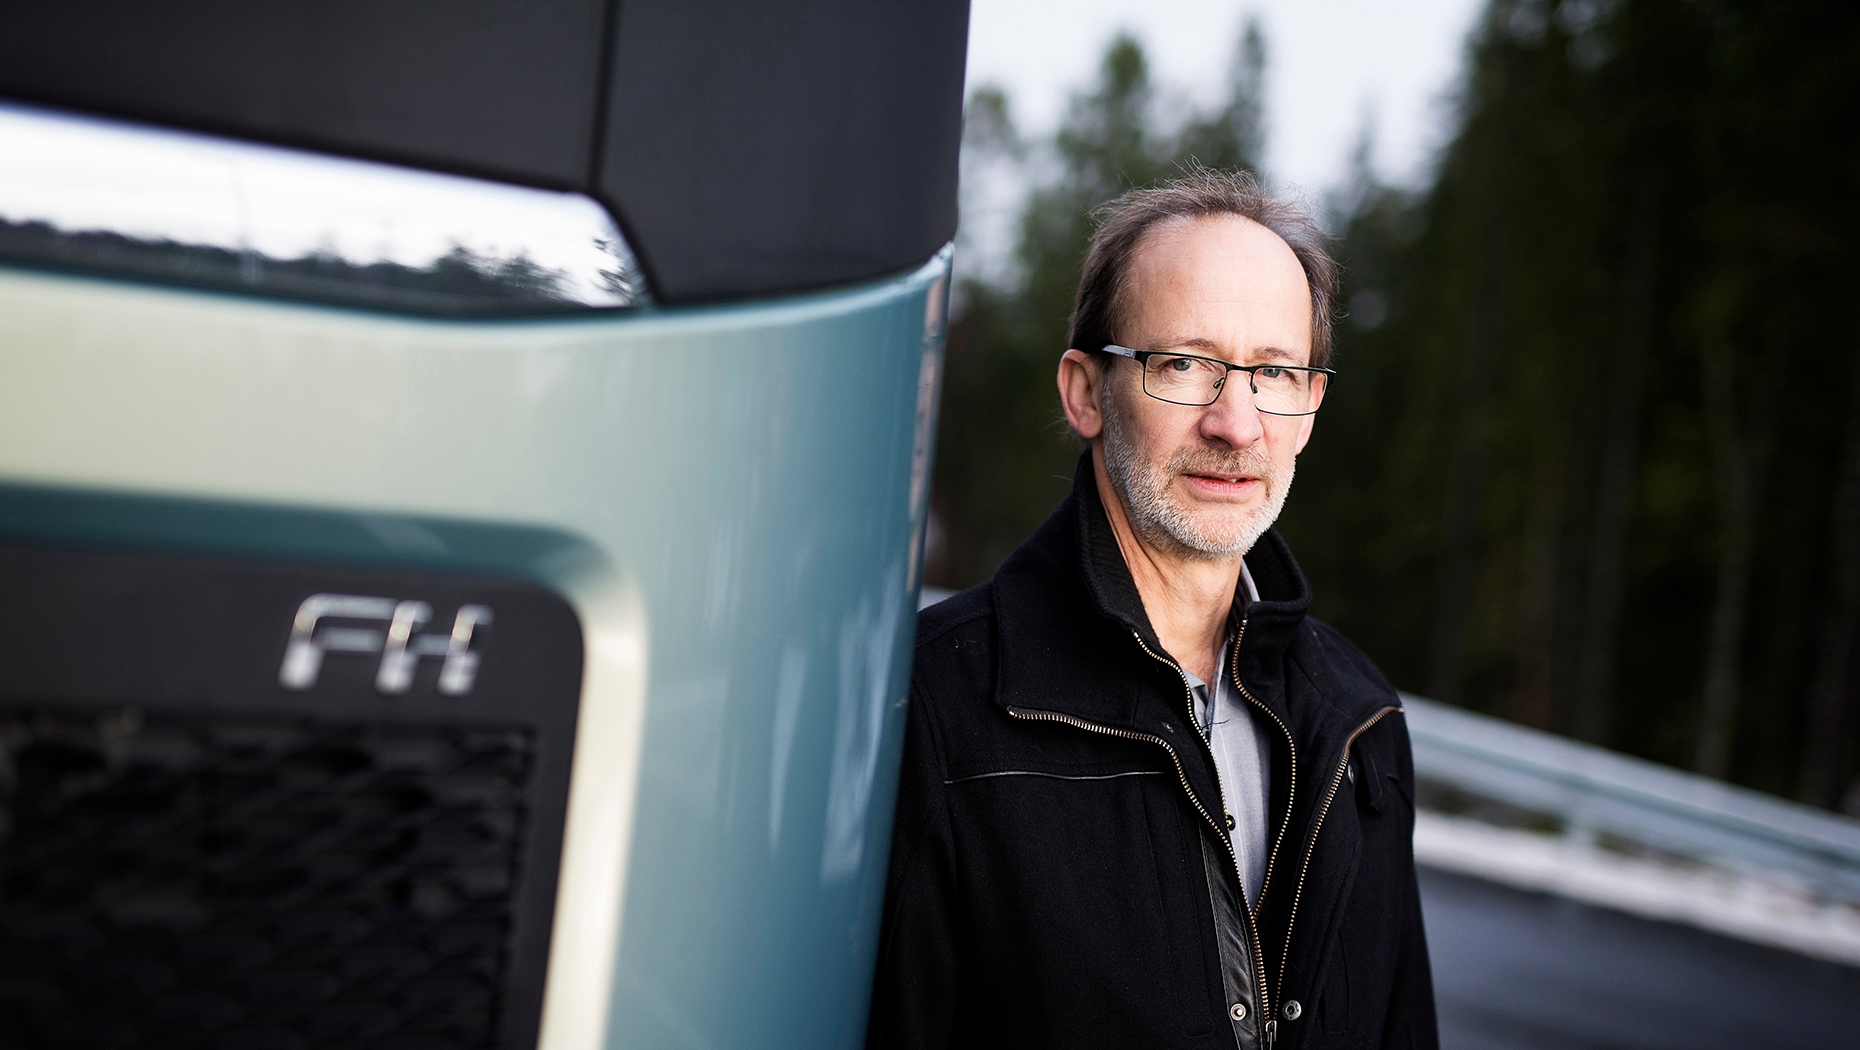 Carl Johan Almqvist, Traffic & Product Safety Director chez Volvo Trucks